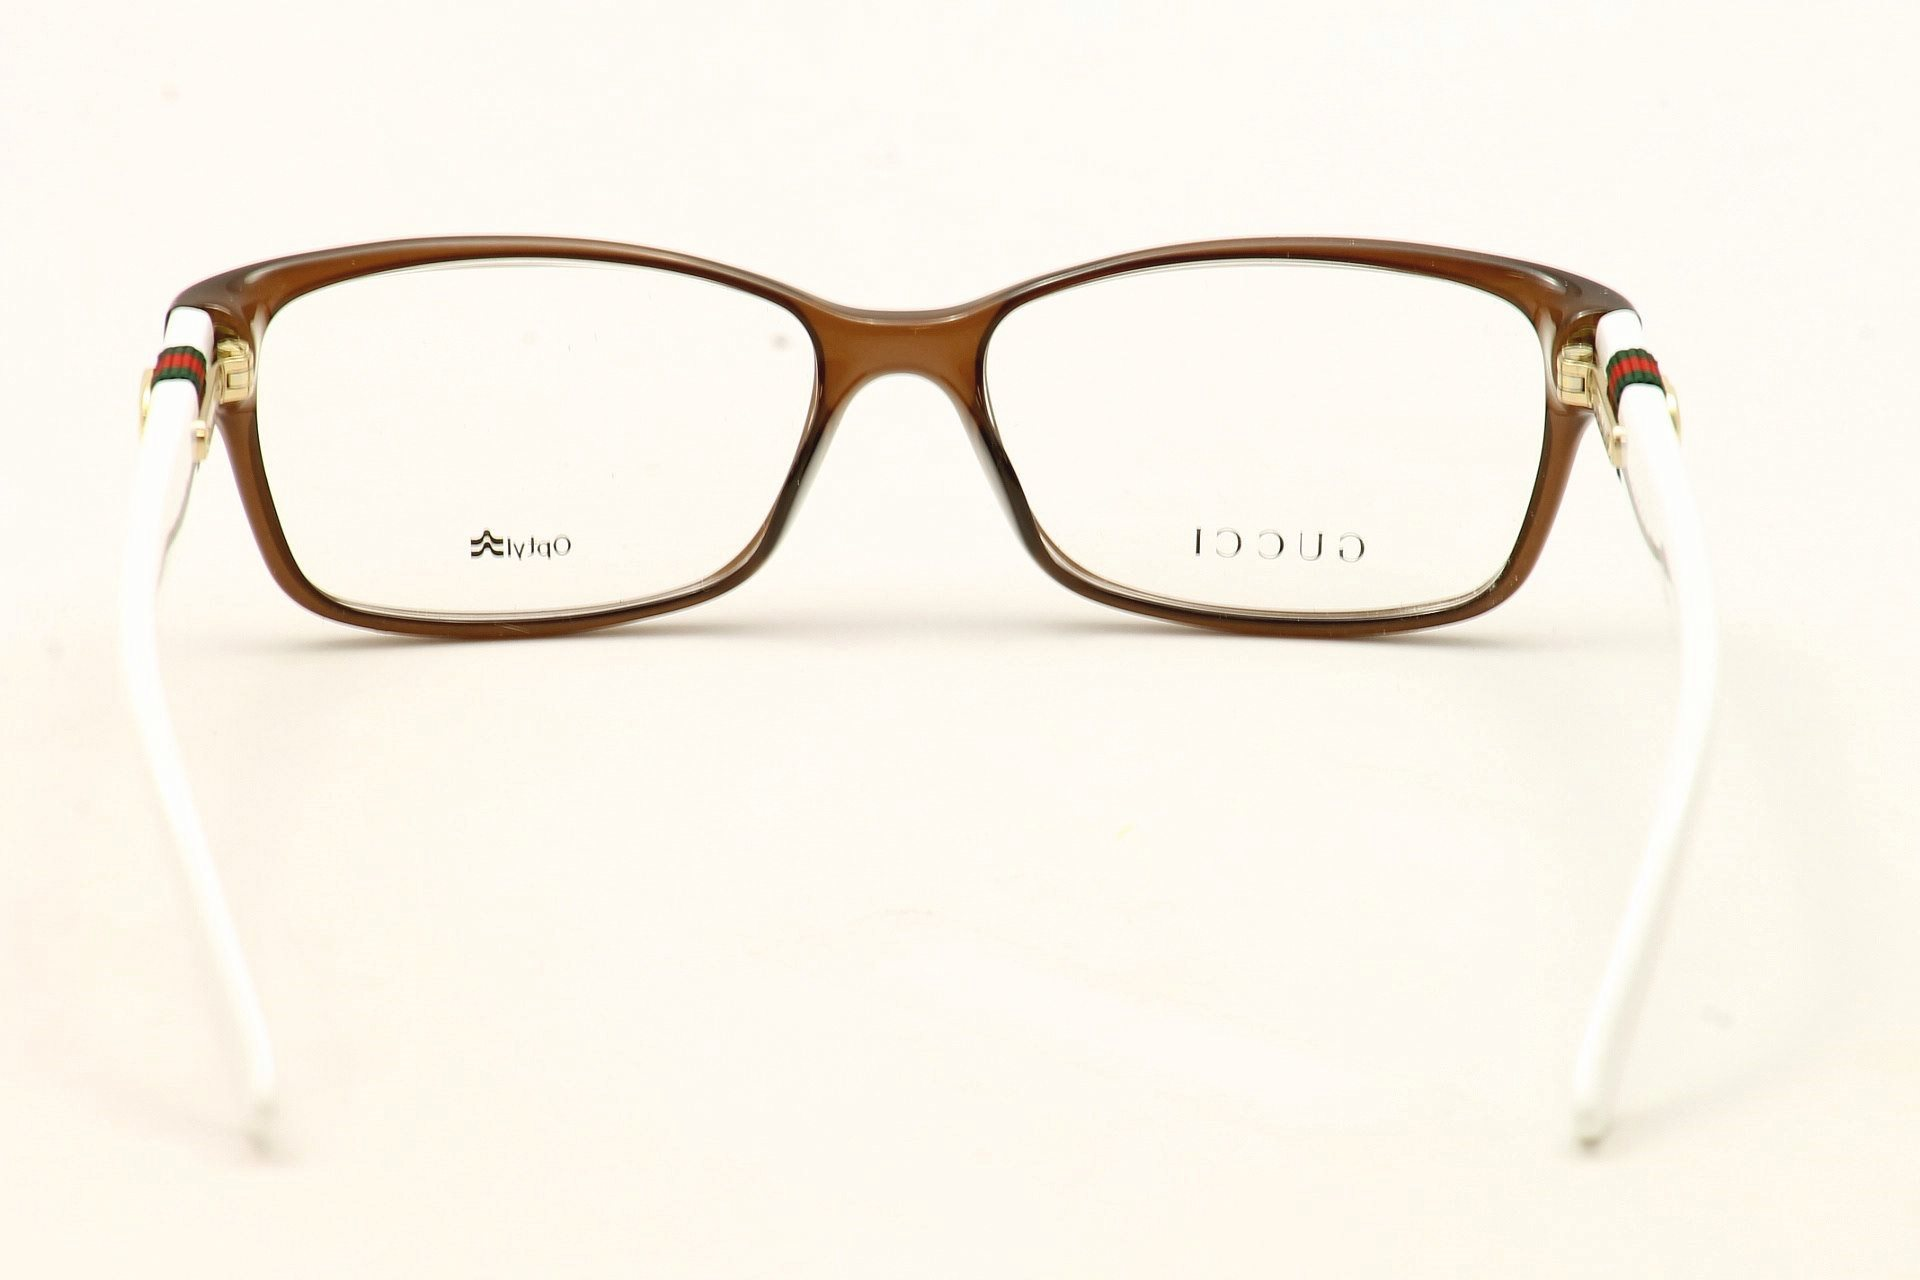 d6dfa157958 Gucci Women s Eyeglasses 3647 Full Rim Optical Frame by Gucci